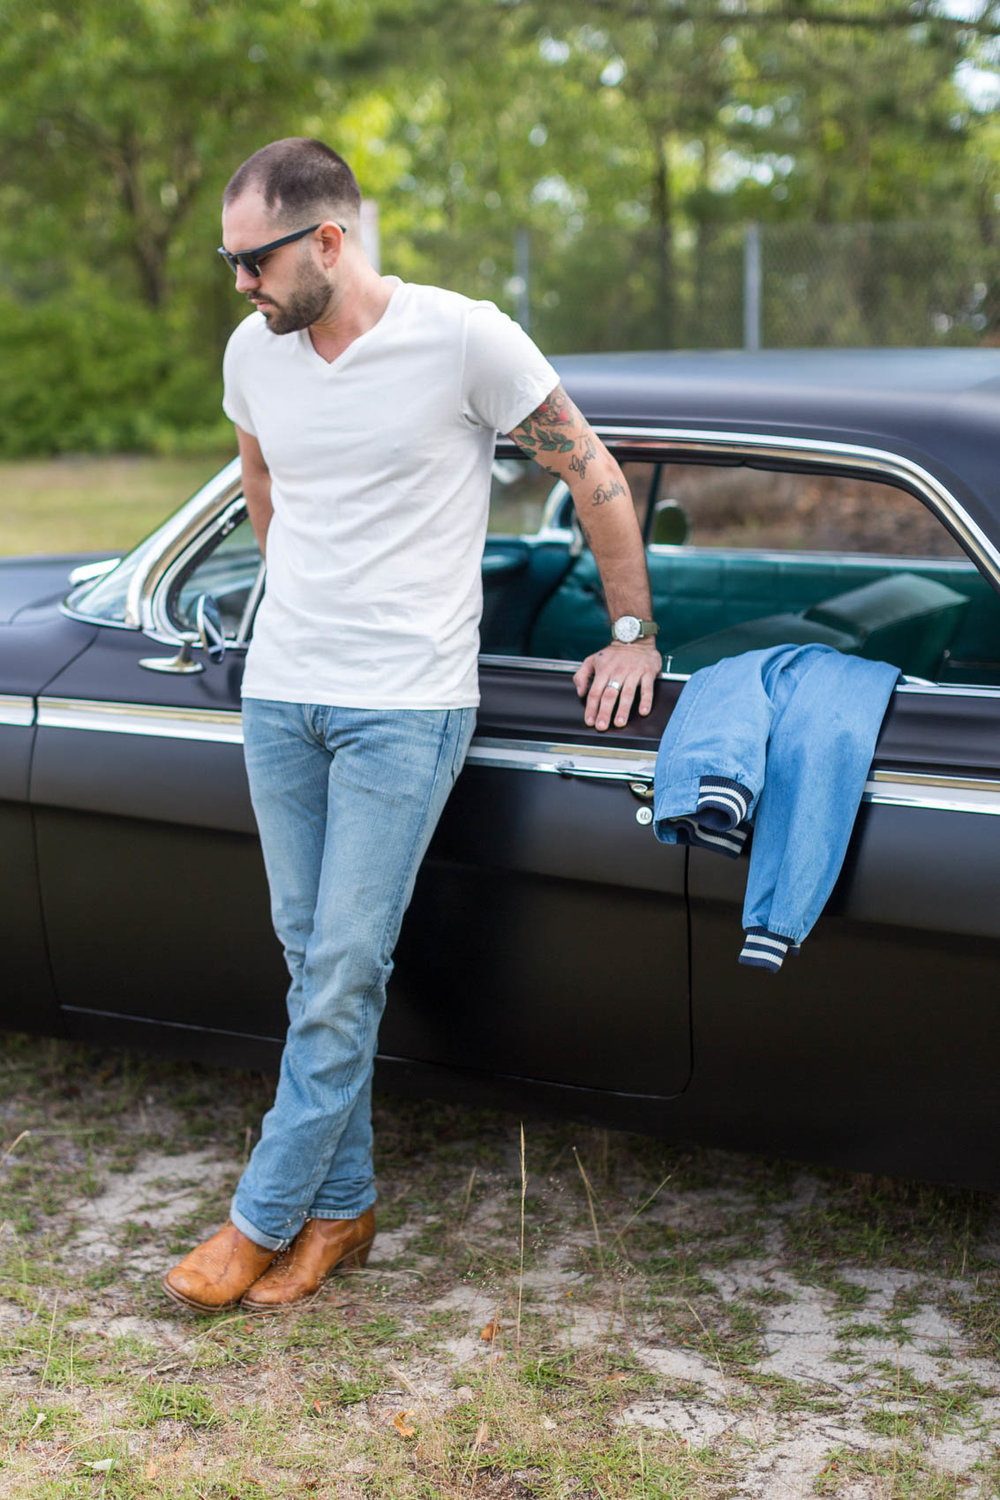 American male with tattoos leaning against vintage car